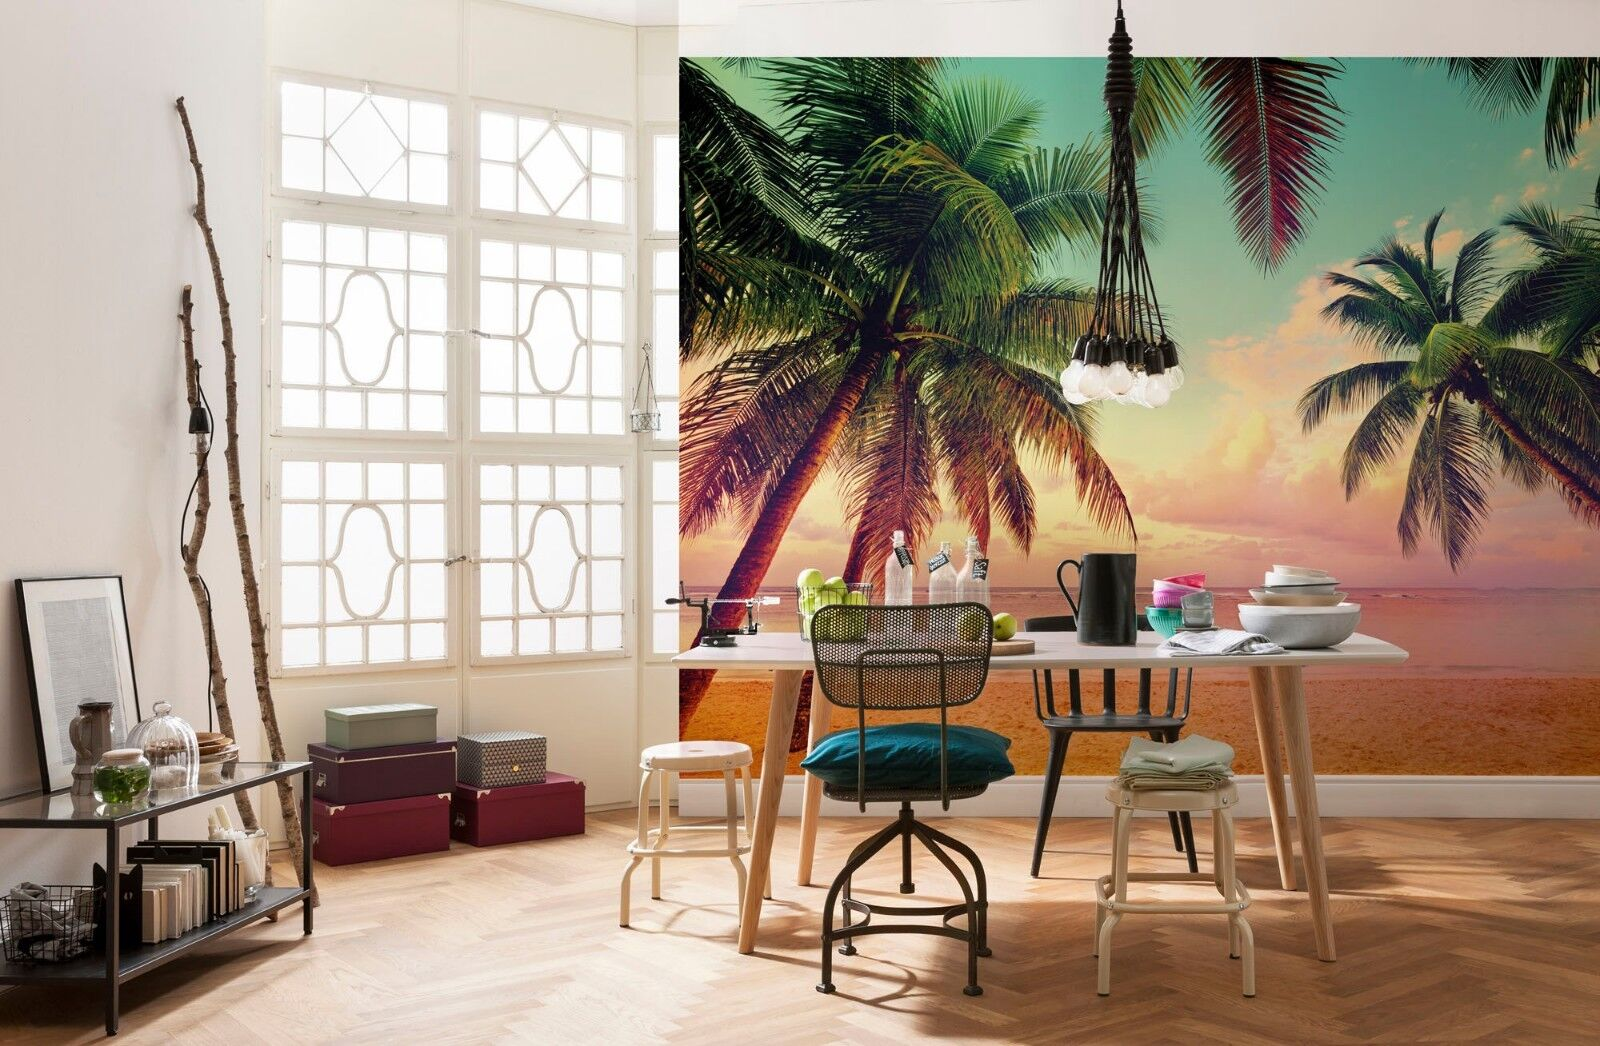 Palms and beach wallpaper giant size photo wall mural 144x100inch   No adhesive